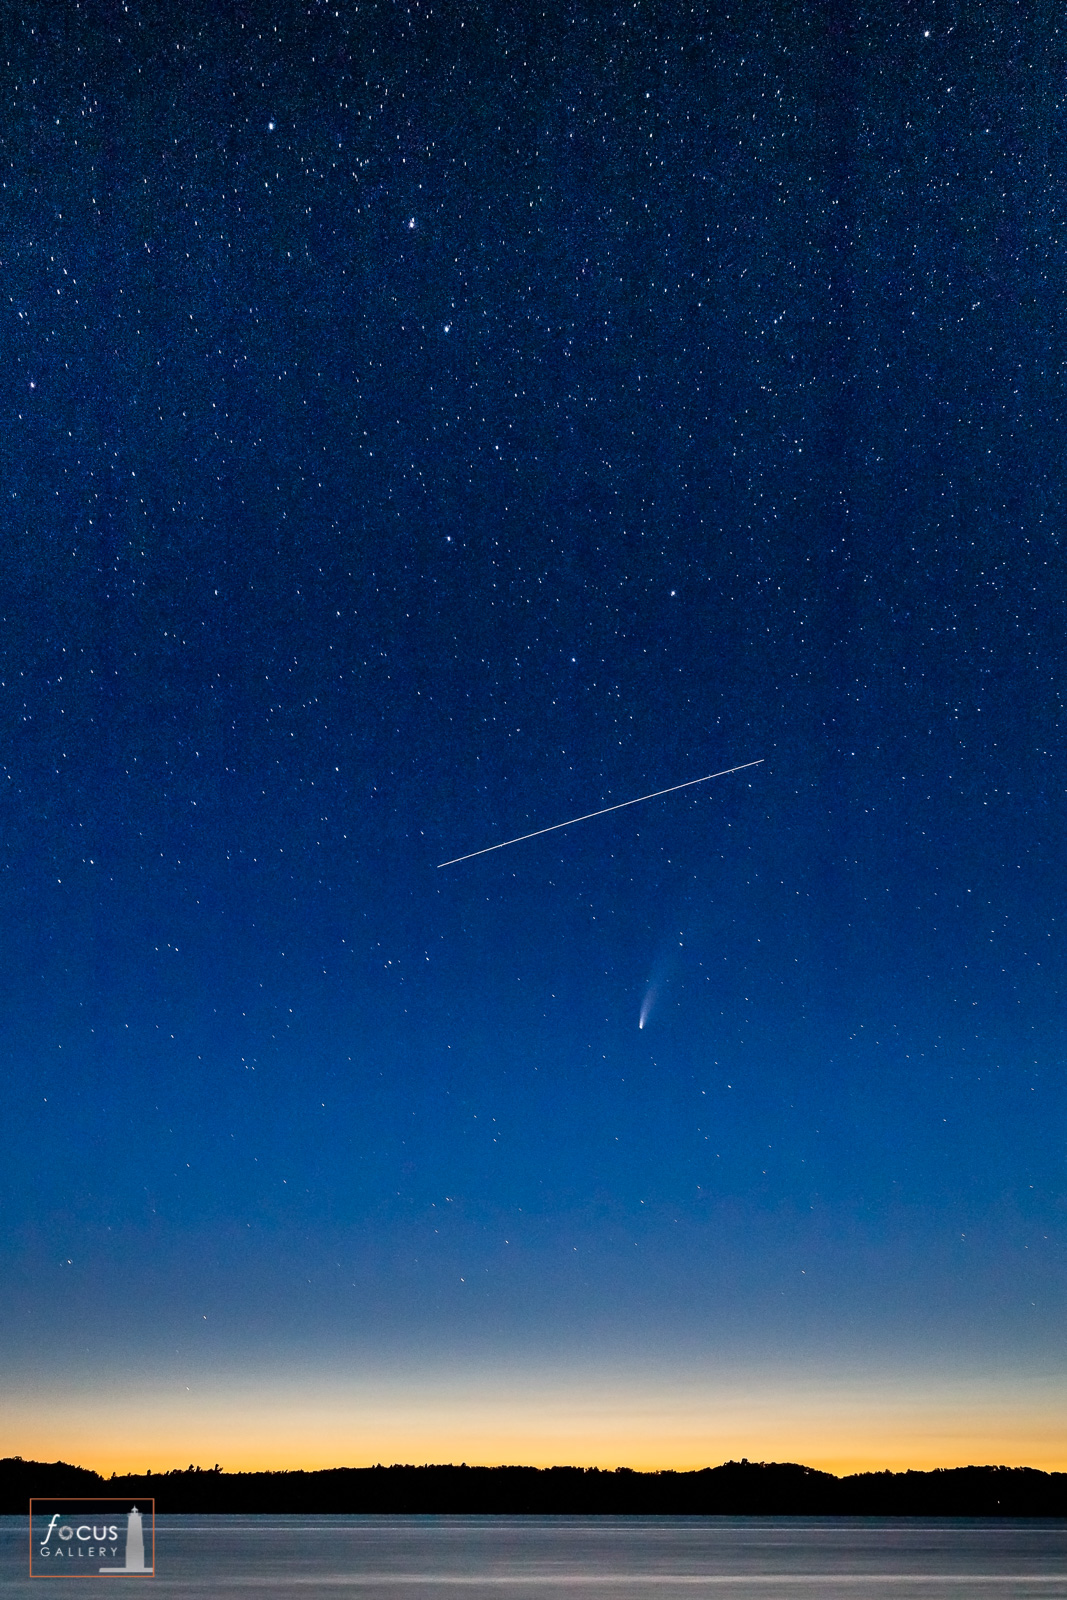 The International Space Station passes between Comet NEOWISE and the Big Dipper over Lower Herring Lake, Benzie County, Michigan.